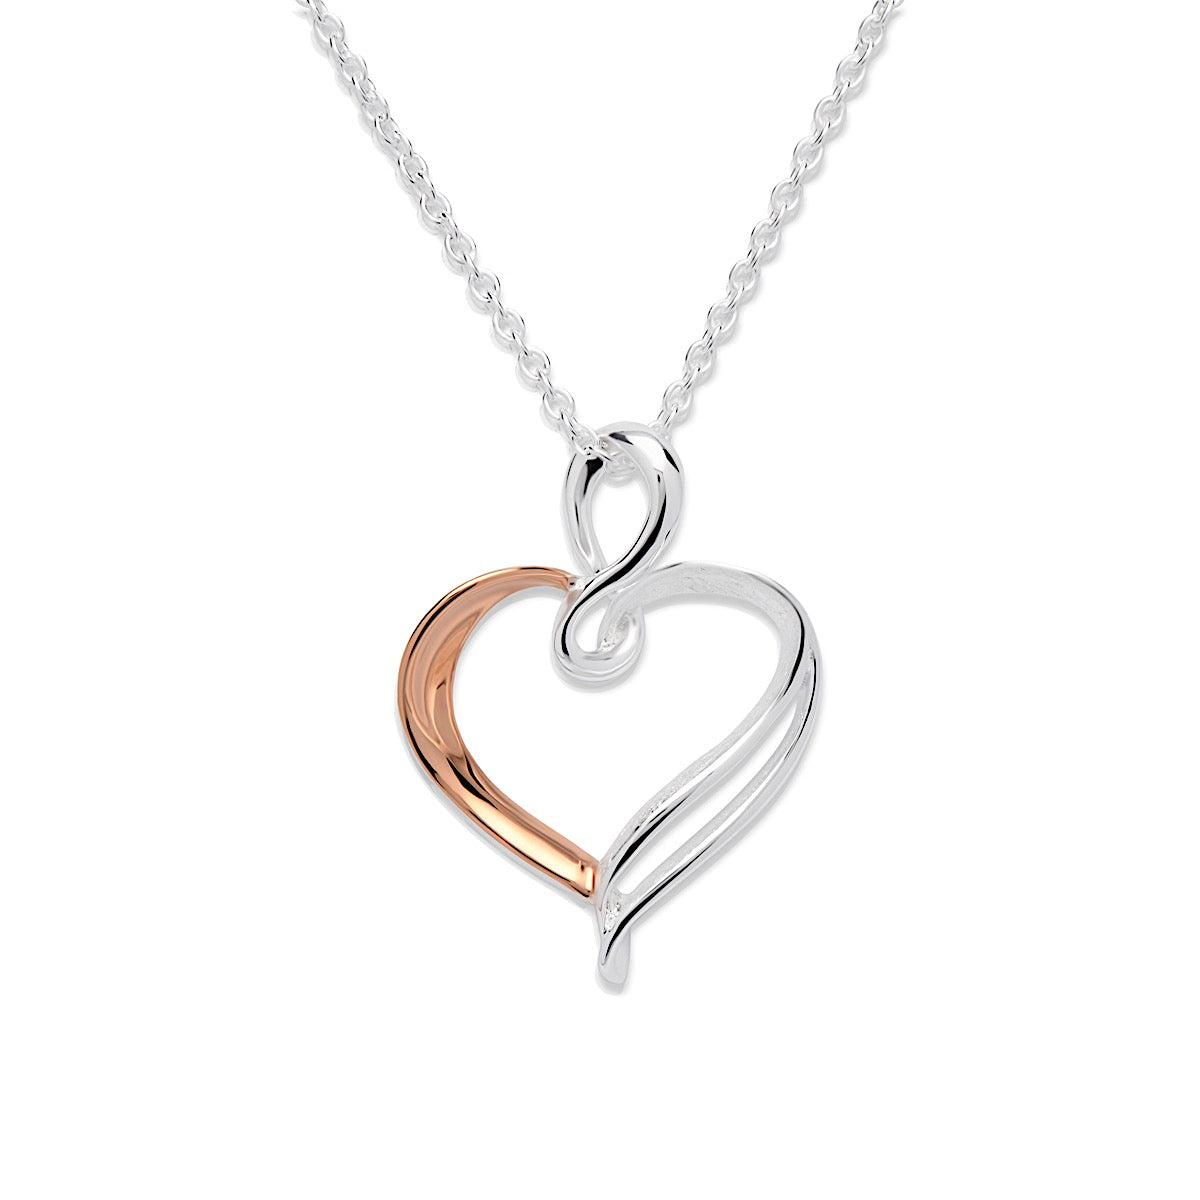 Unique Sterling Silver / RG Open Swirl Heart Necklace